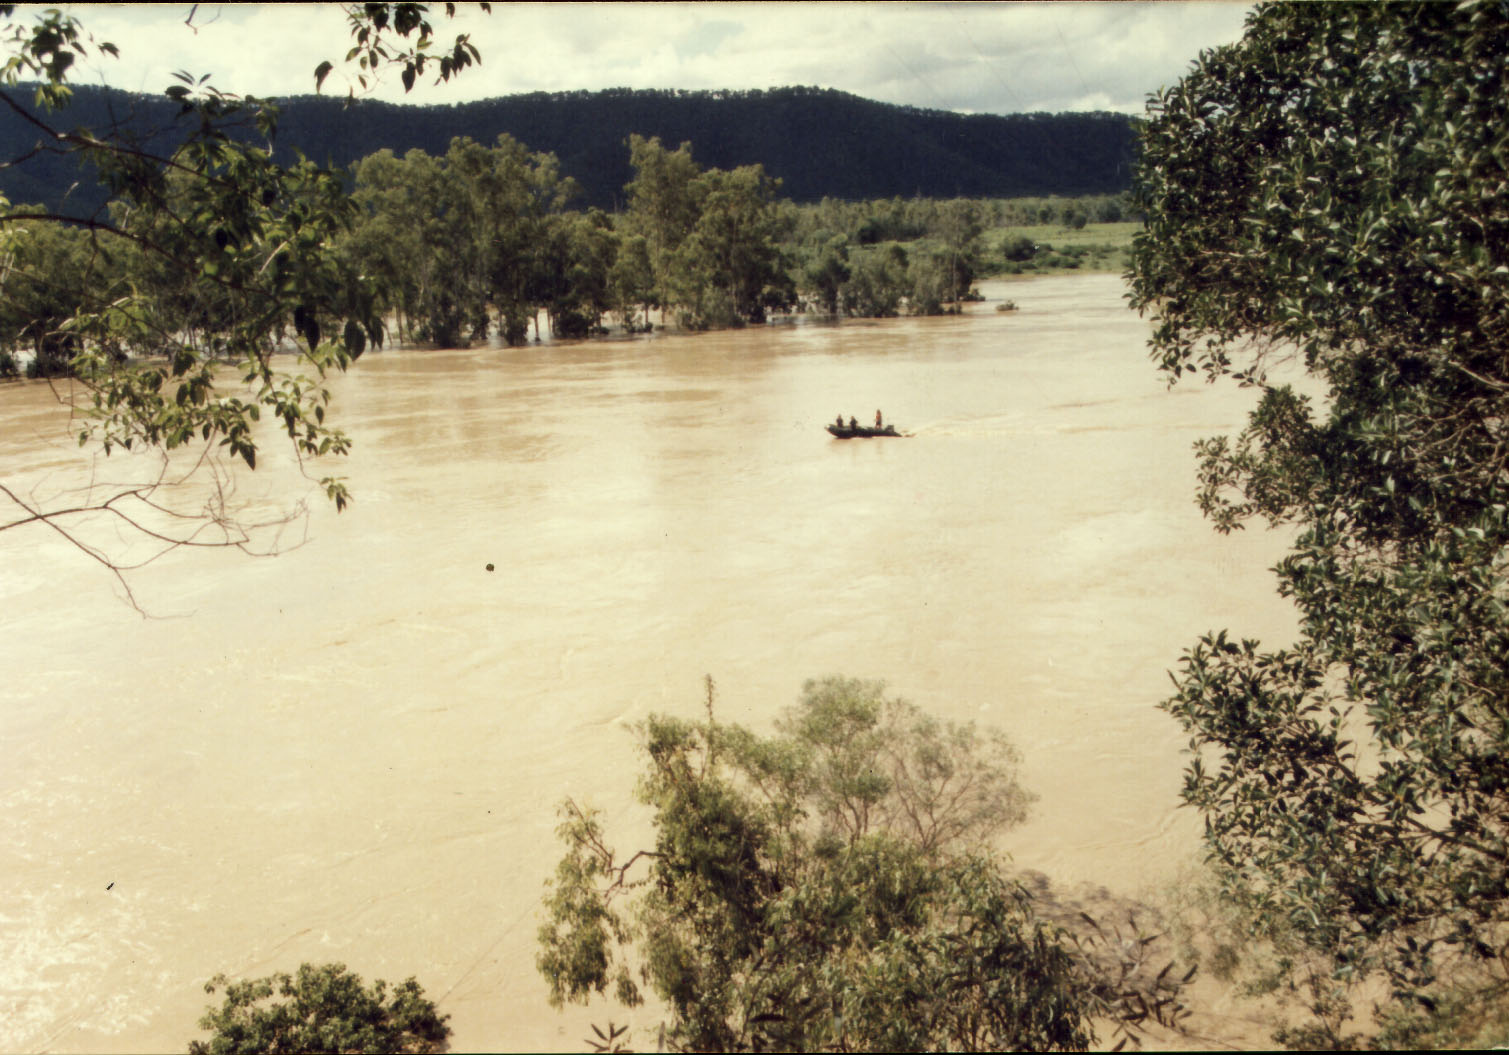 1988 zodiac boat flood gauging in midstream - discharge 9450 cumecs Photo by DNRM